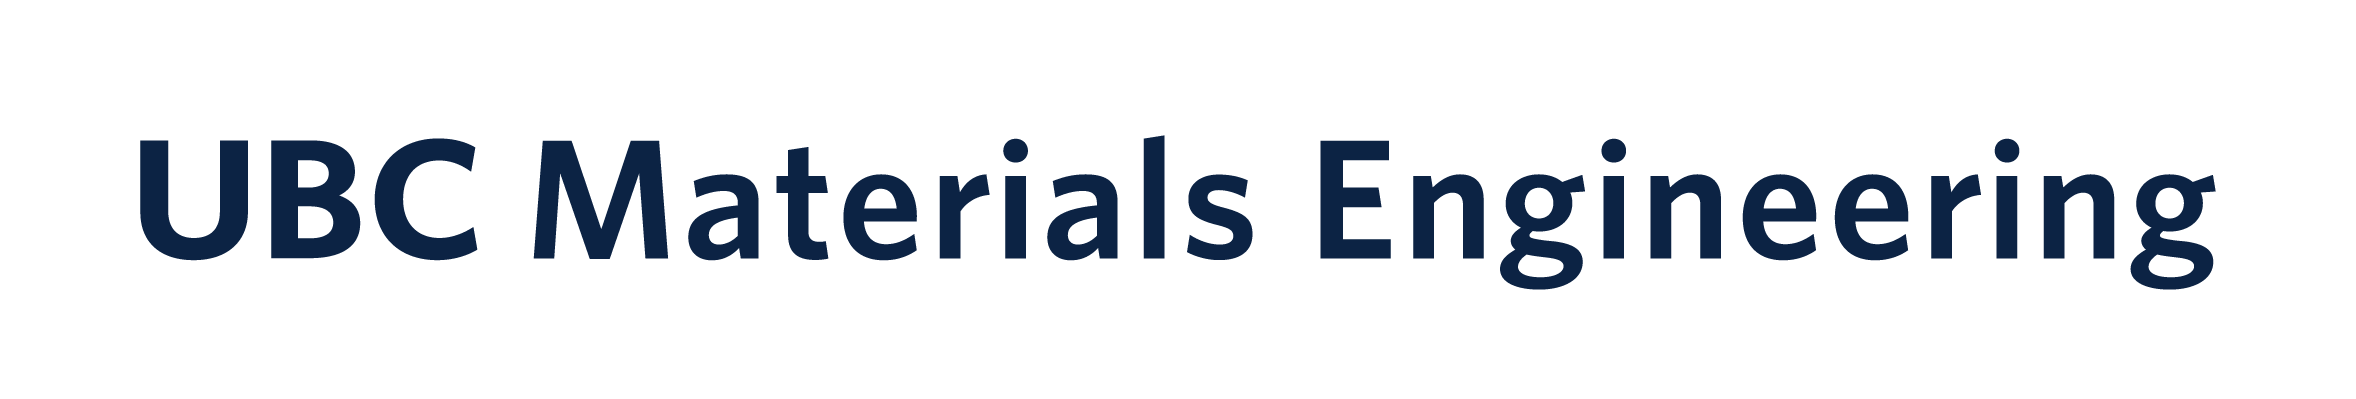 UBC Materials Engineering Logo